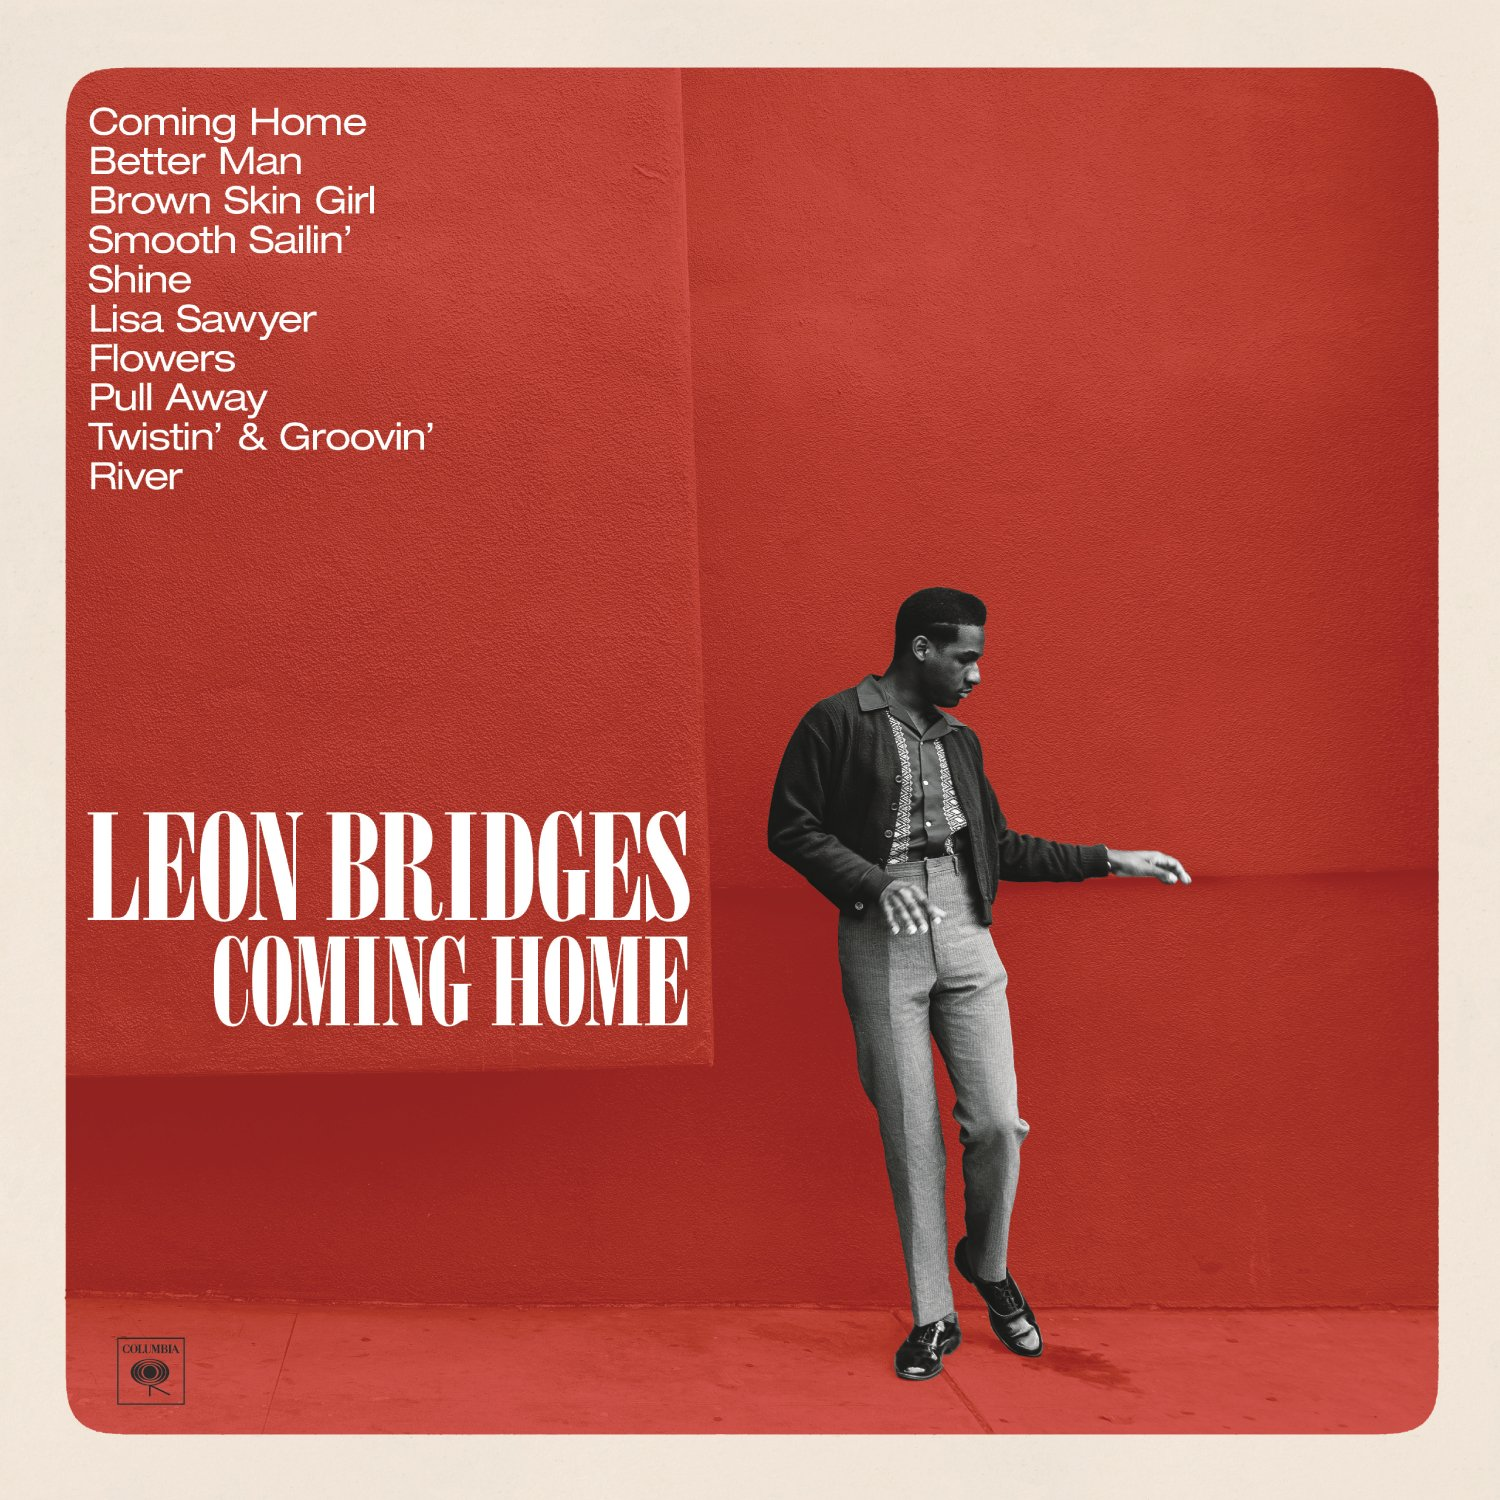 Coming Home by Sony